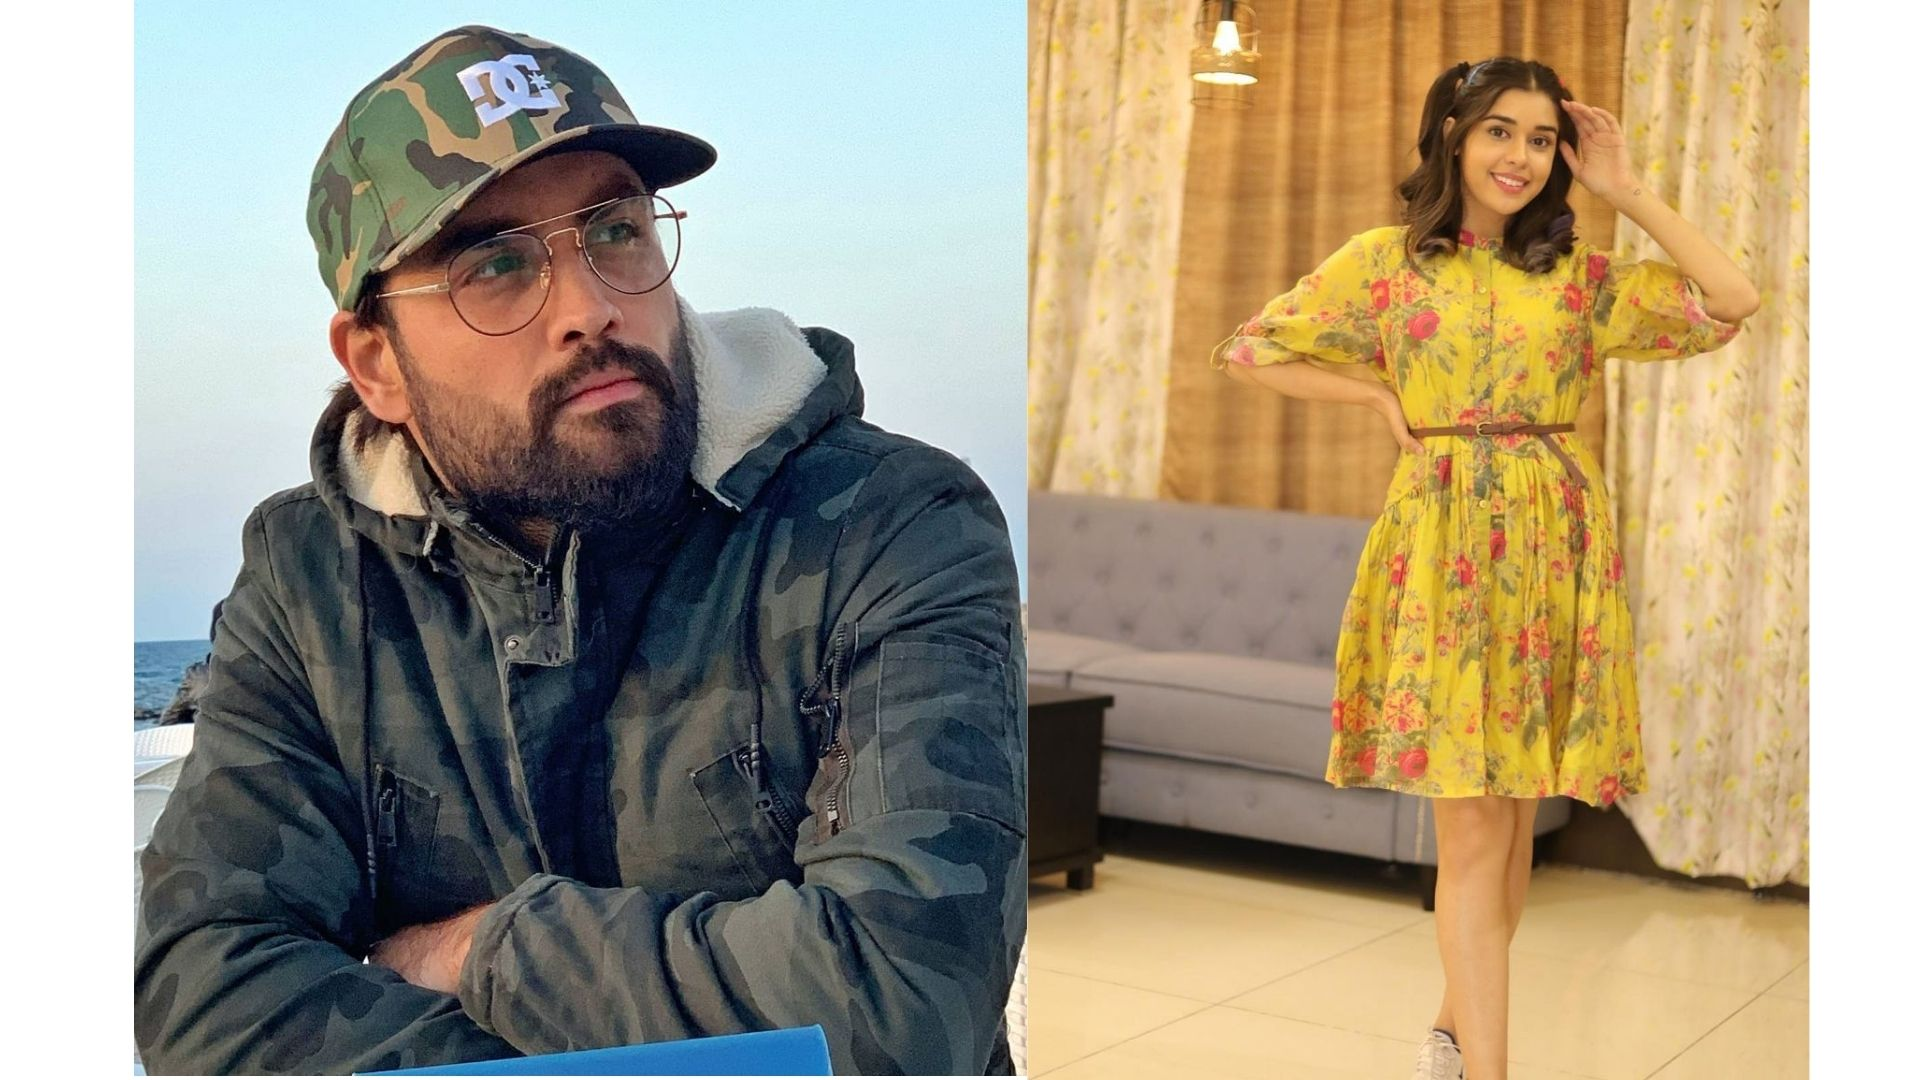 Eisha Singh To Star Opposite Vivian D'sena In A New TV Show?; Plot To Be Inspired By A Shahid Kapoor Starrer